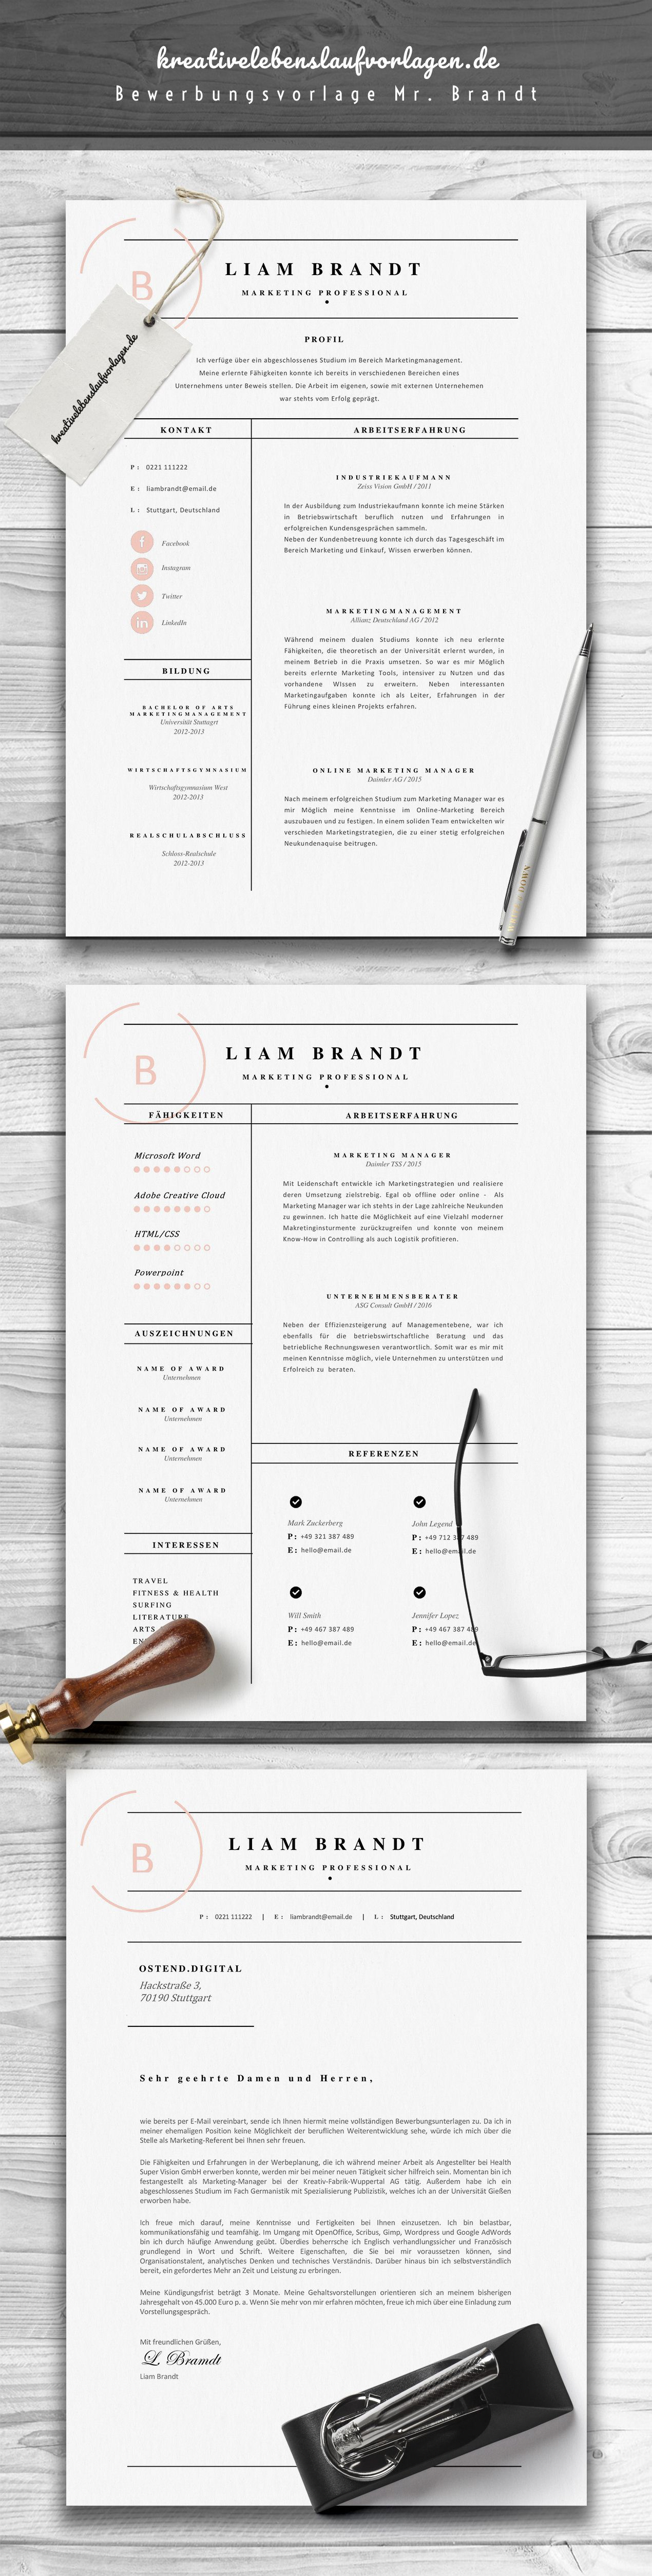 Mr. Brandt | Corporate design and Microsoft word